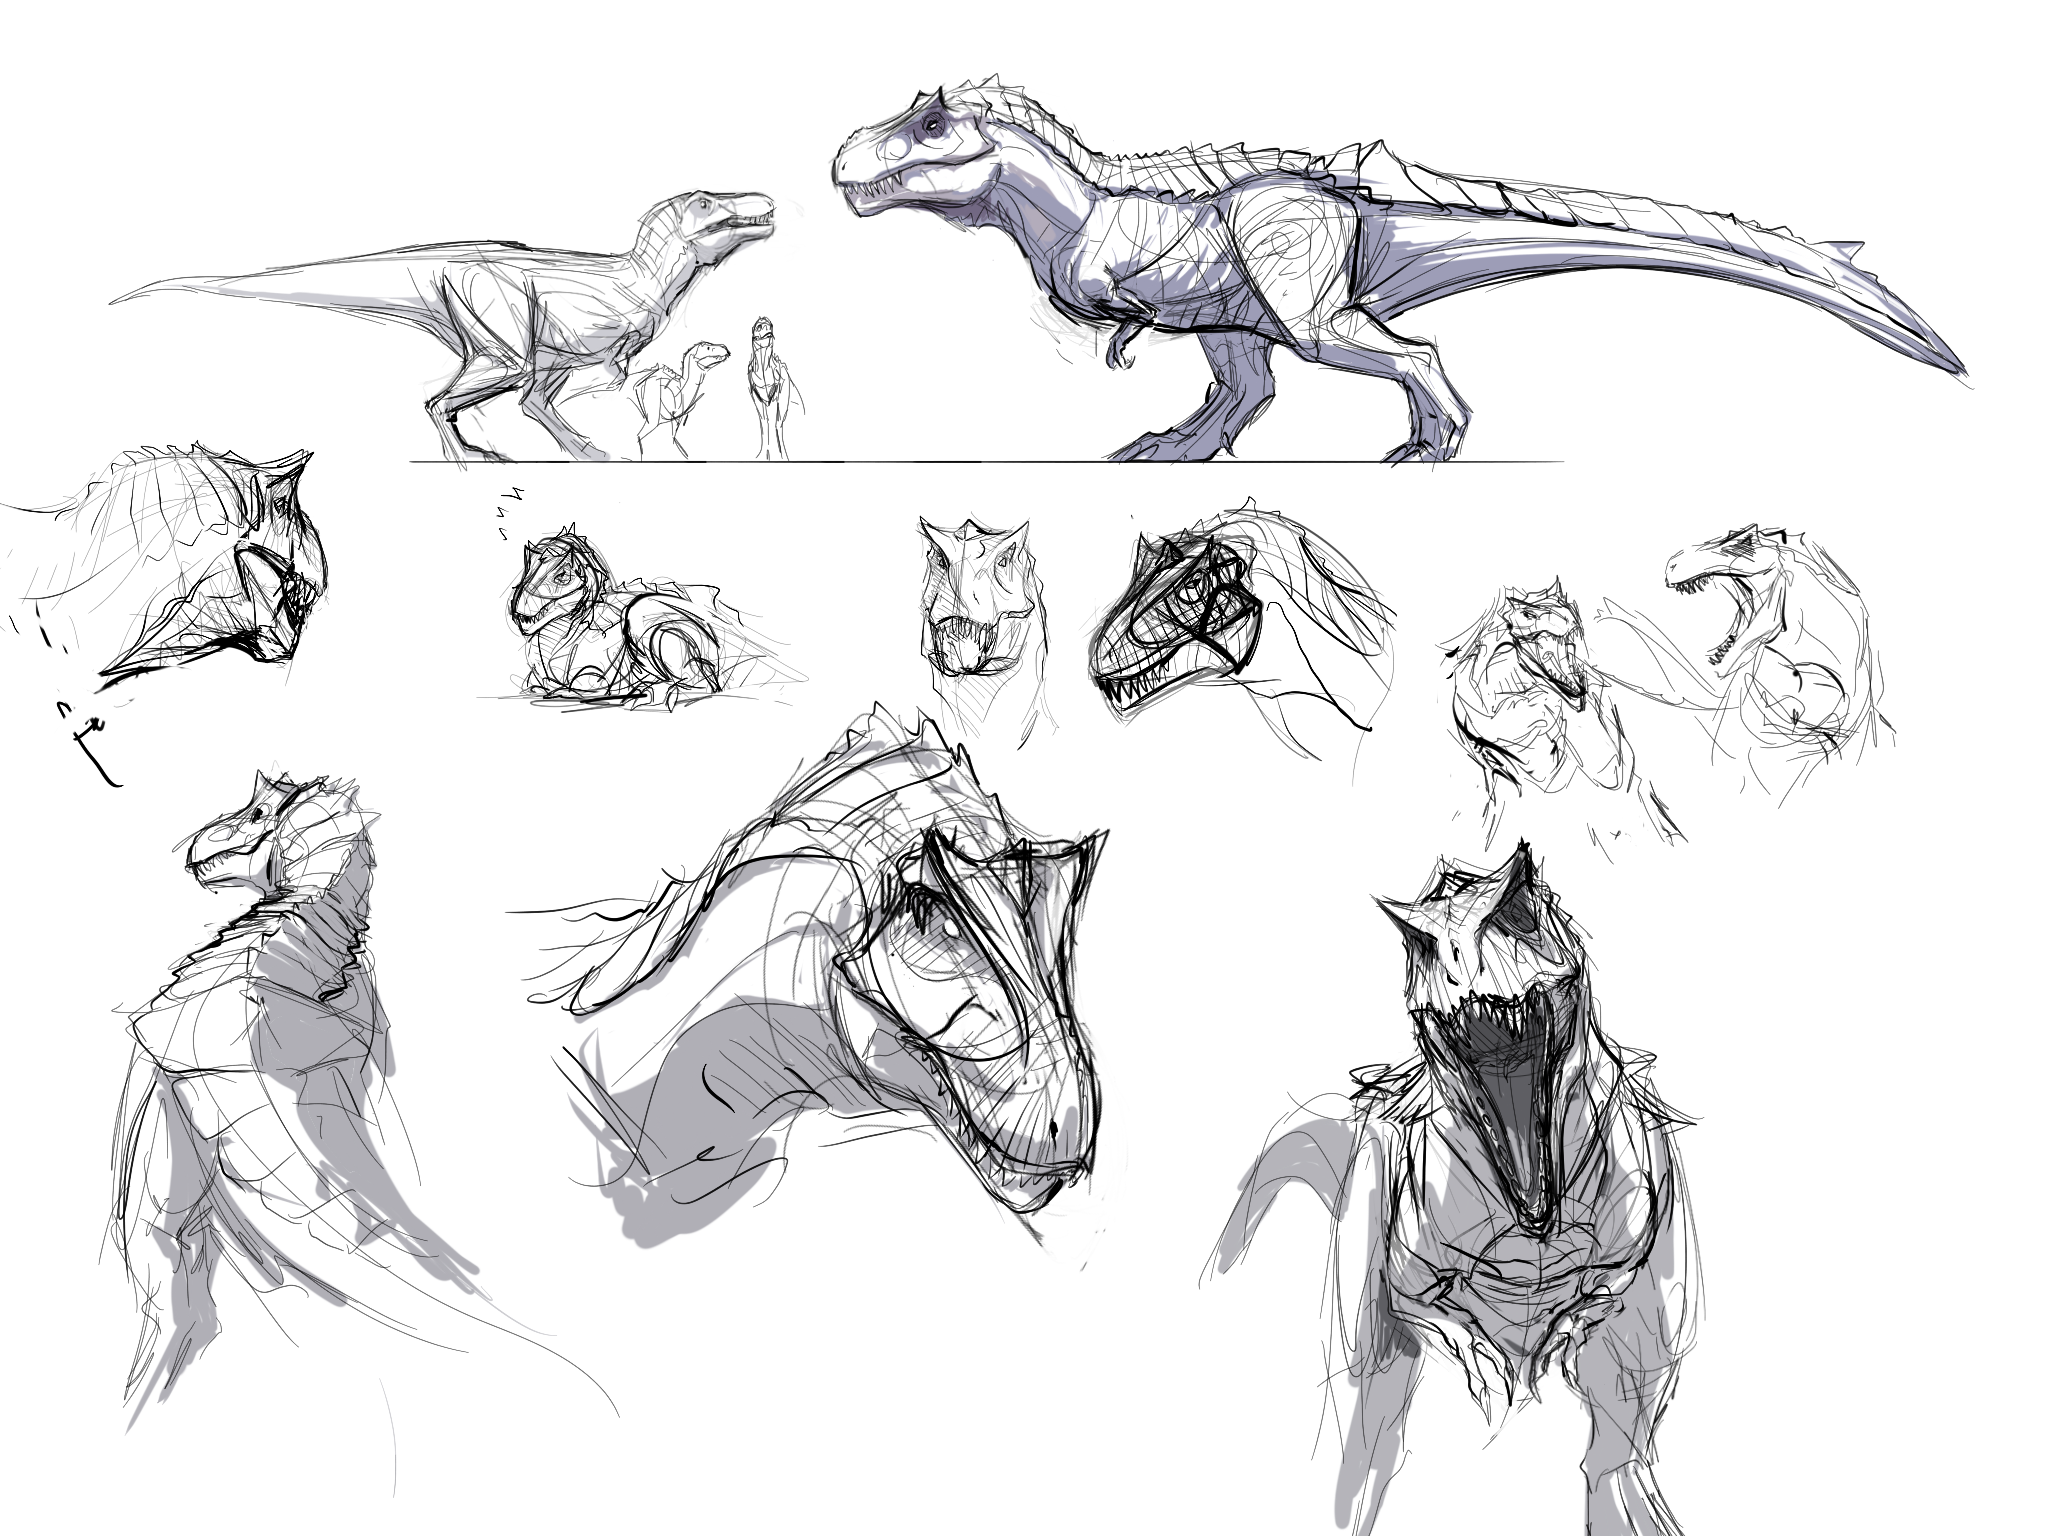 Hypo doodles by Tapwing on DeviantArt